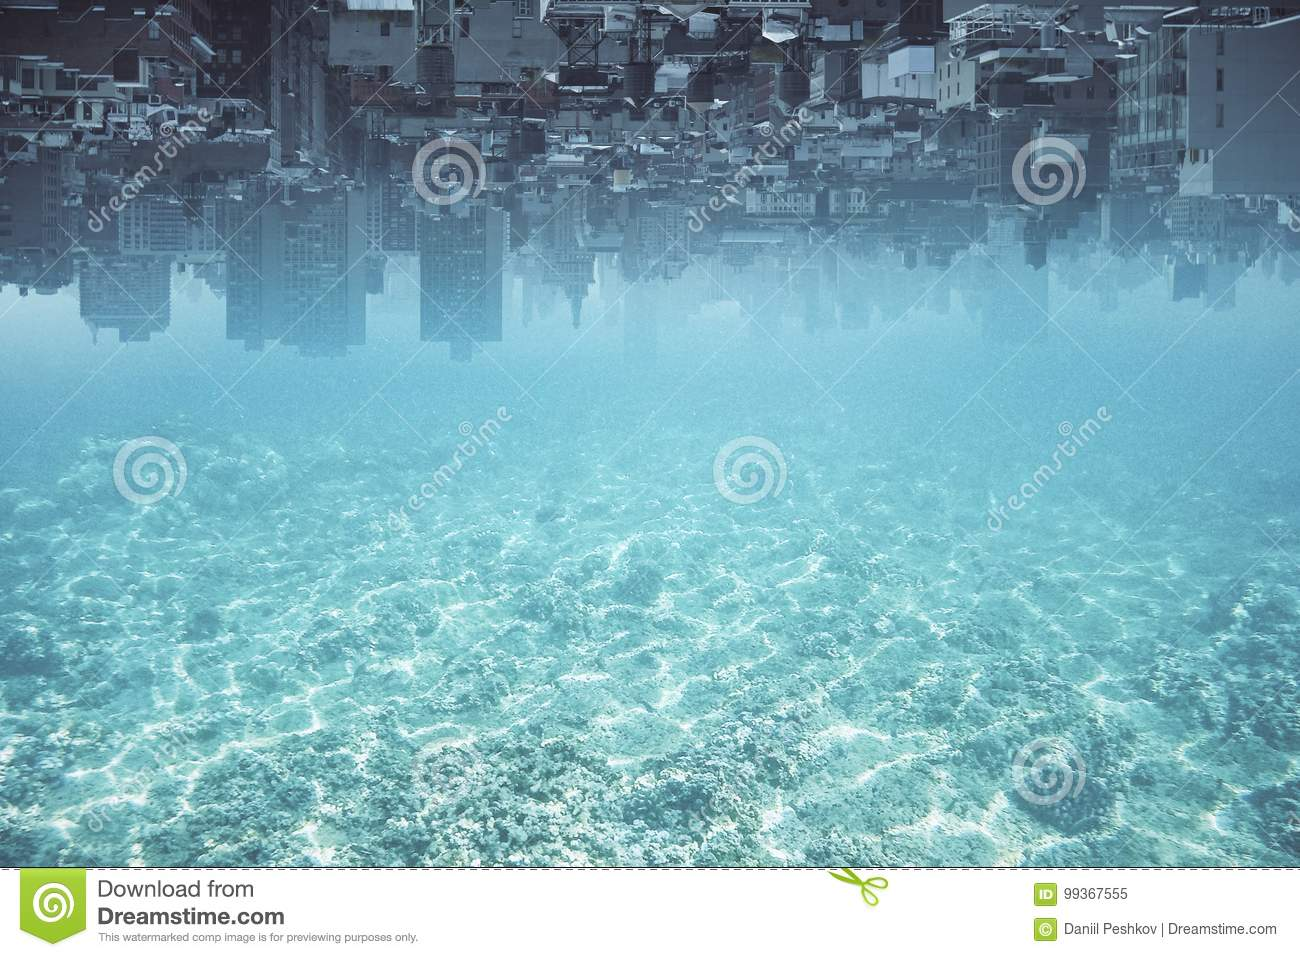 Abstract upside-down water city background